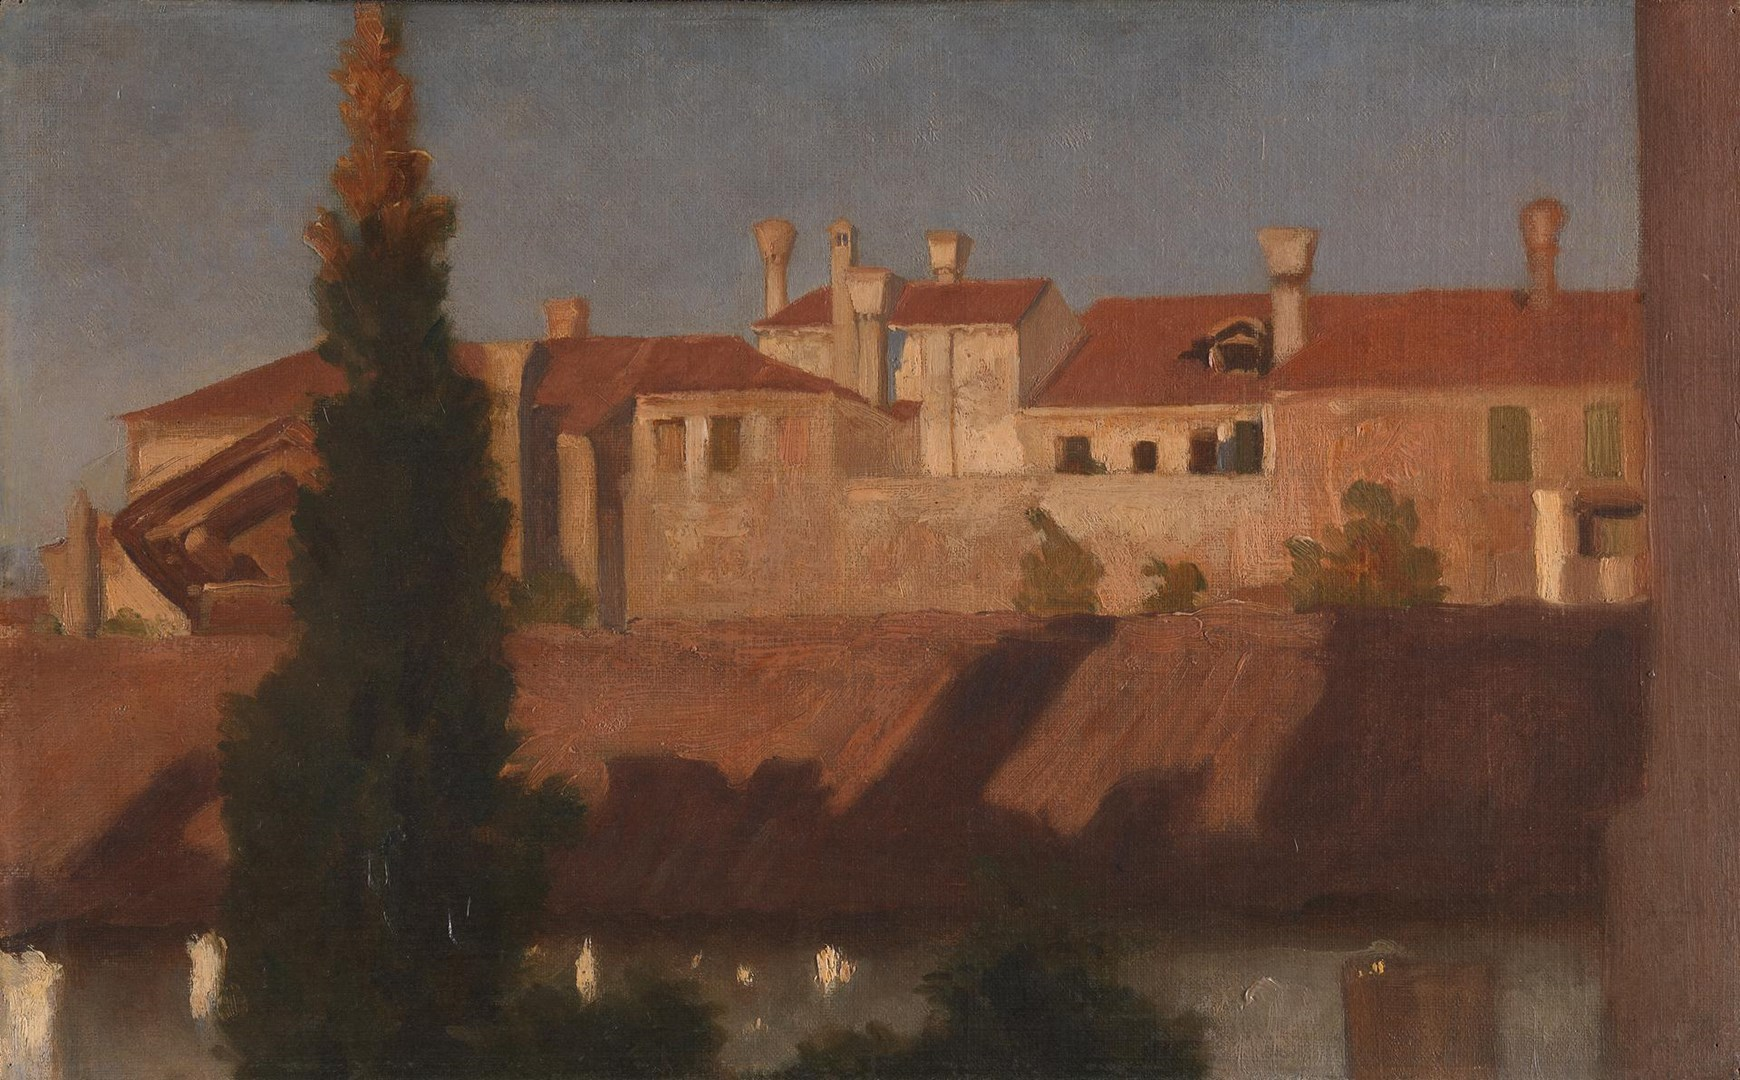 Houses in Venice by Frederic, Lord Leighton